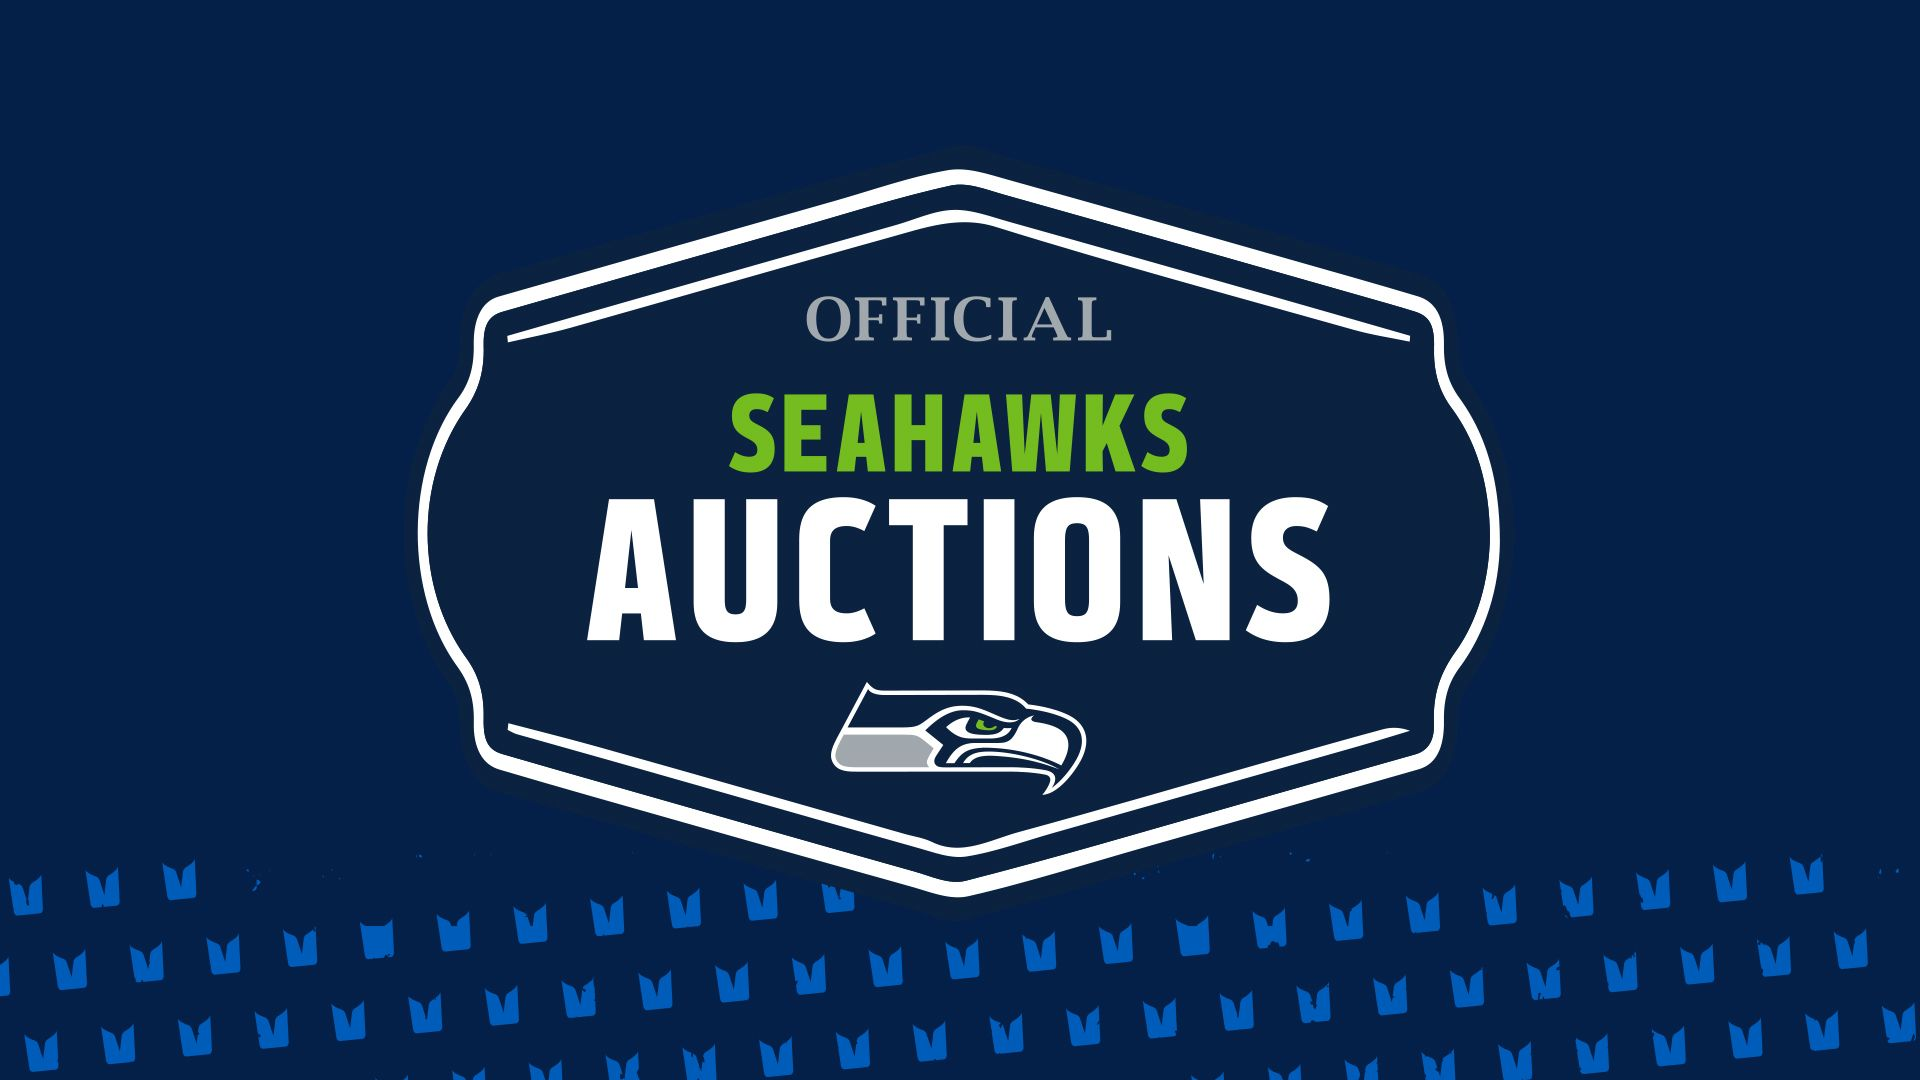 SeahawksAuctions_1920x1080